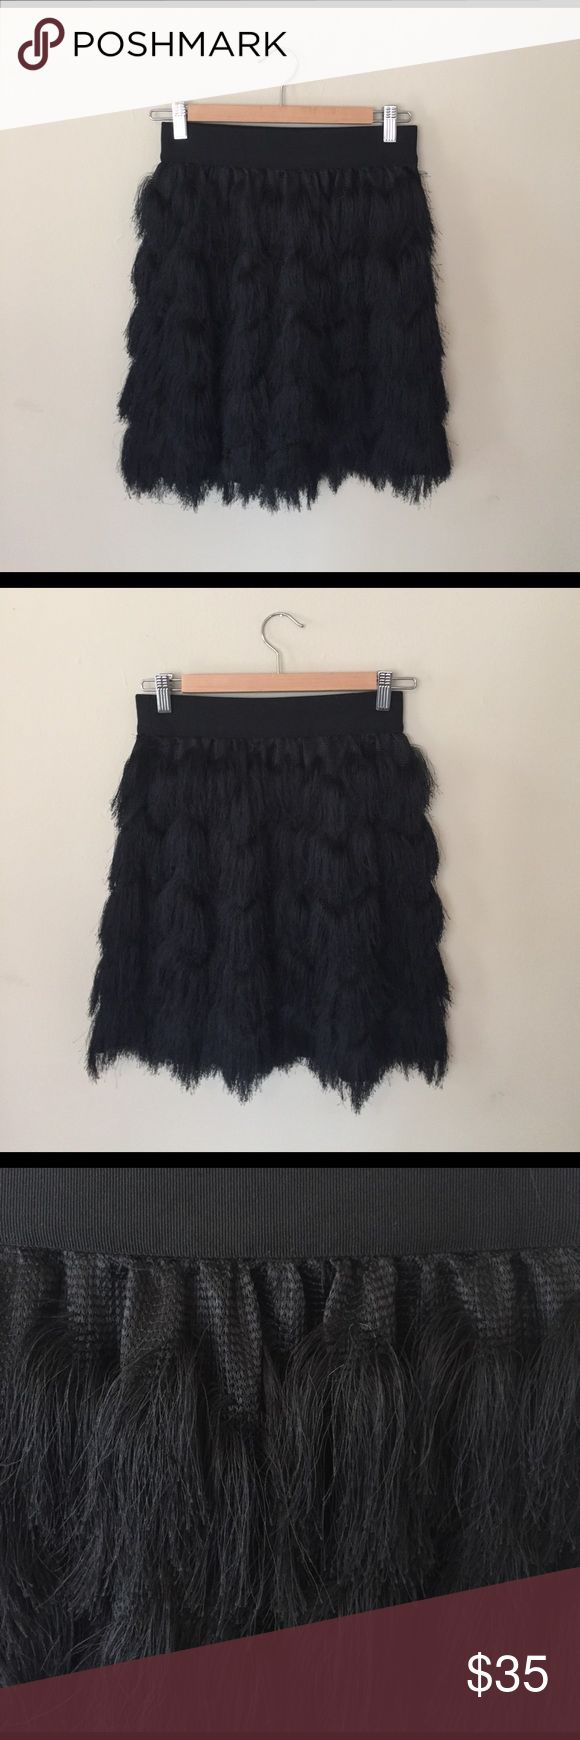 Banana Republic fringed skirt Adorable black fringes skirt from Banana Republic. Worn once to an engagement party. Banana Republic Skirts